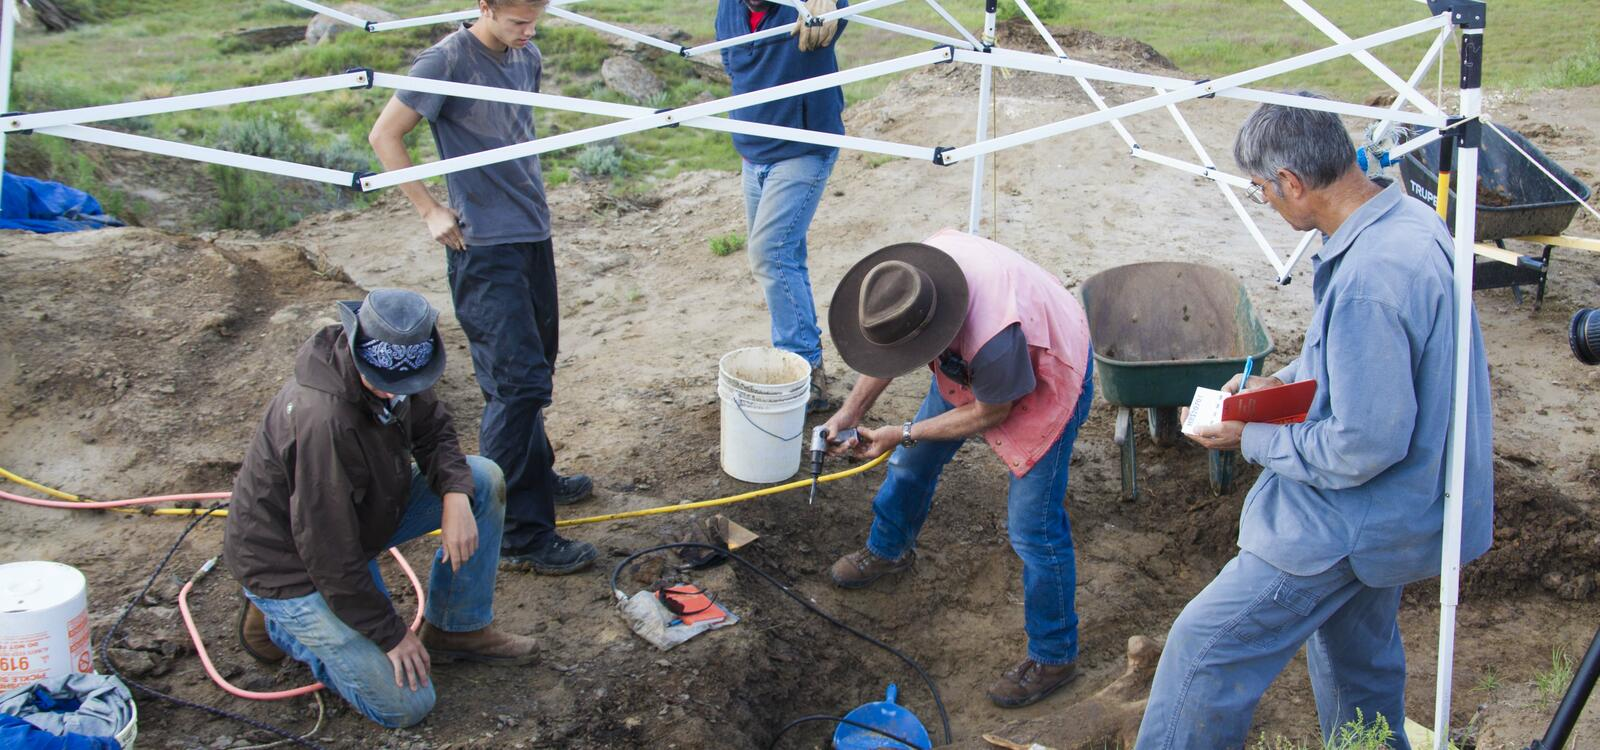 Under a tent, a group of men look down as they use different tools to excavate the burried bone before them